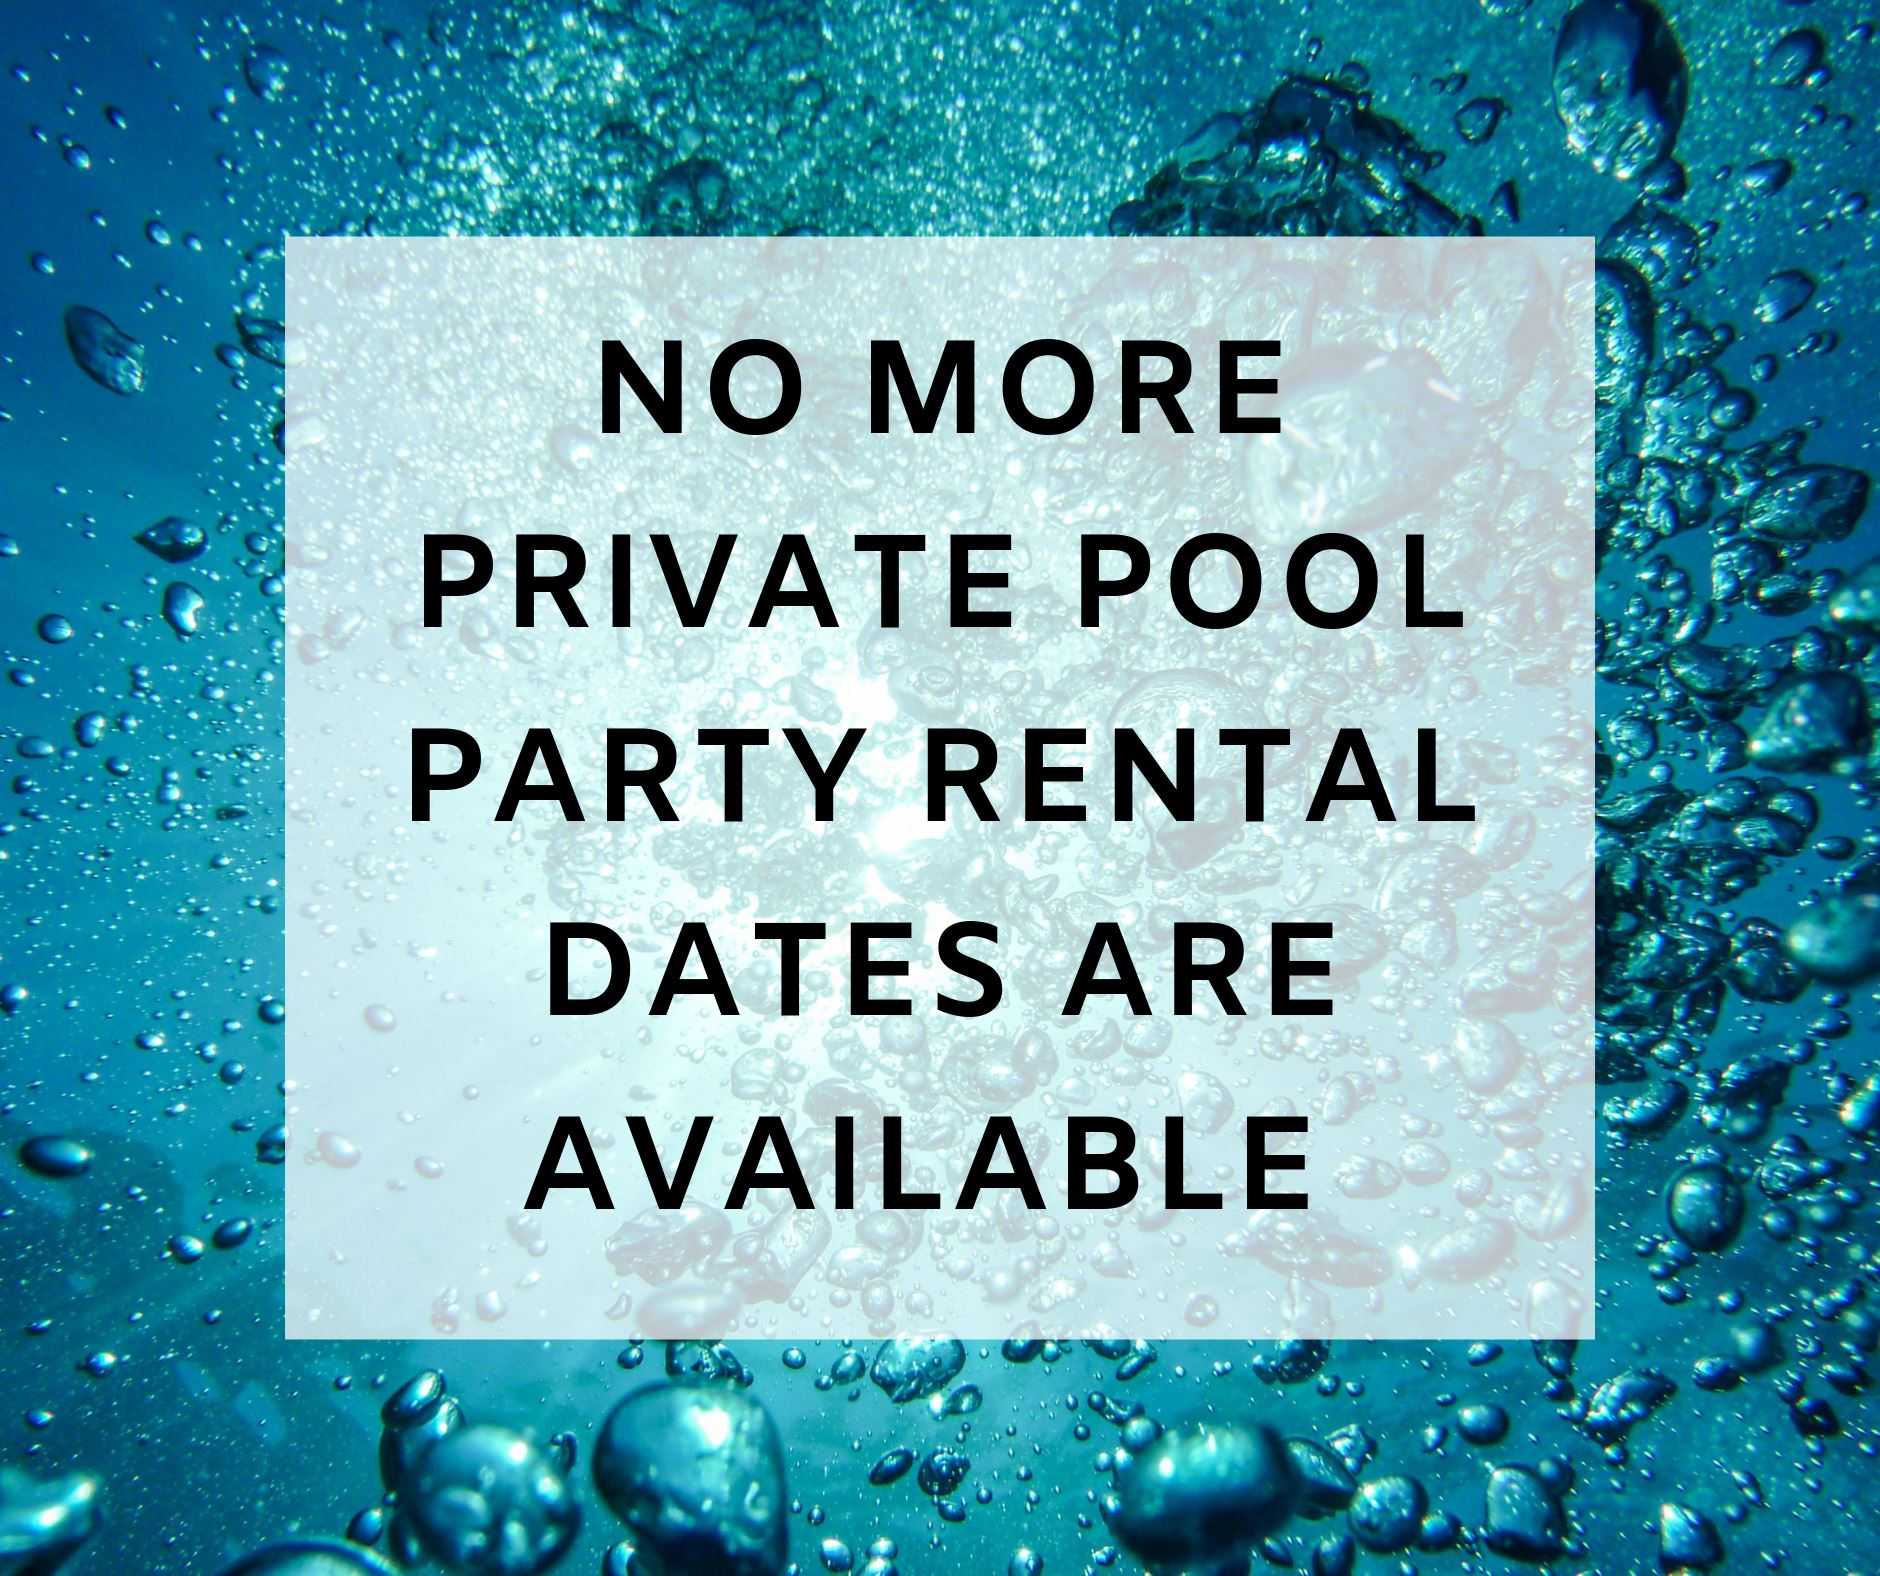 NO MORE PRIVATE PARTY RENTAL DATES AVAILABLE